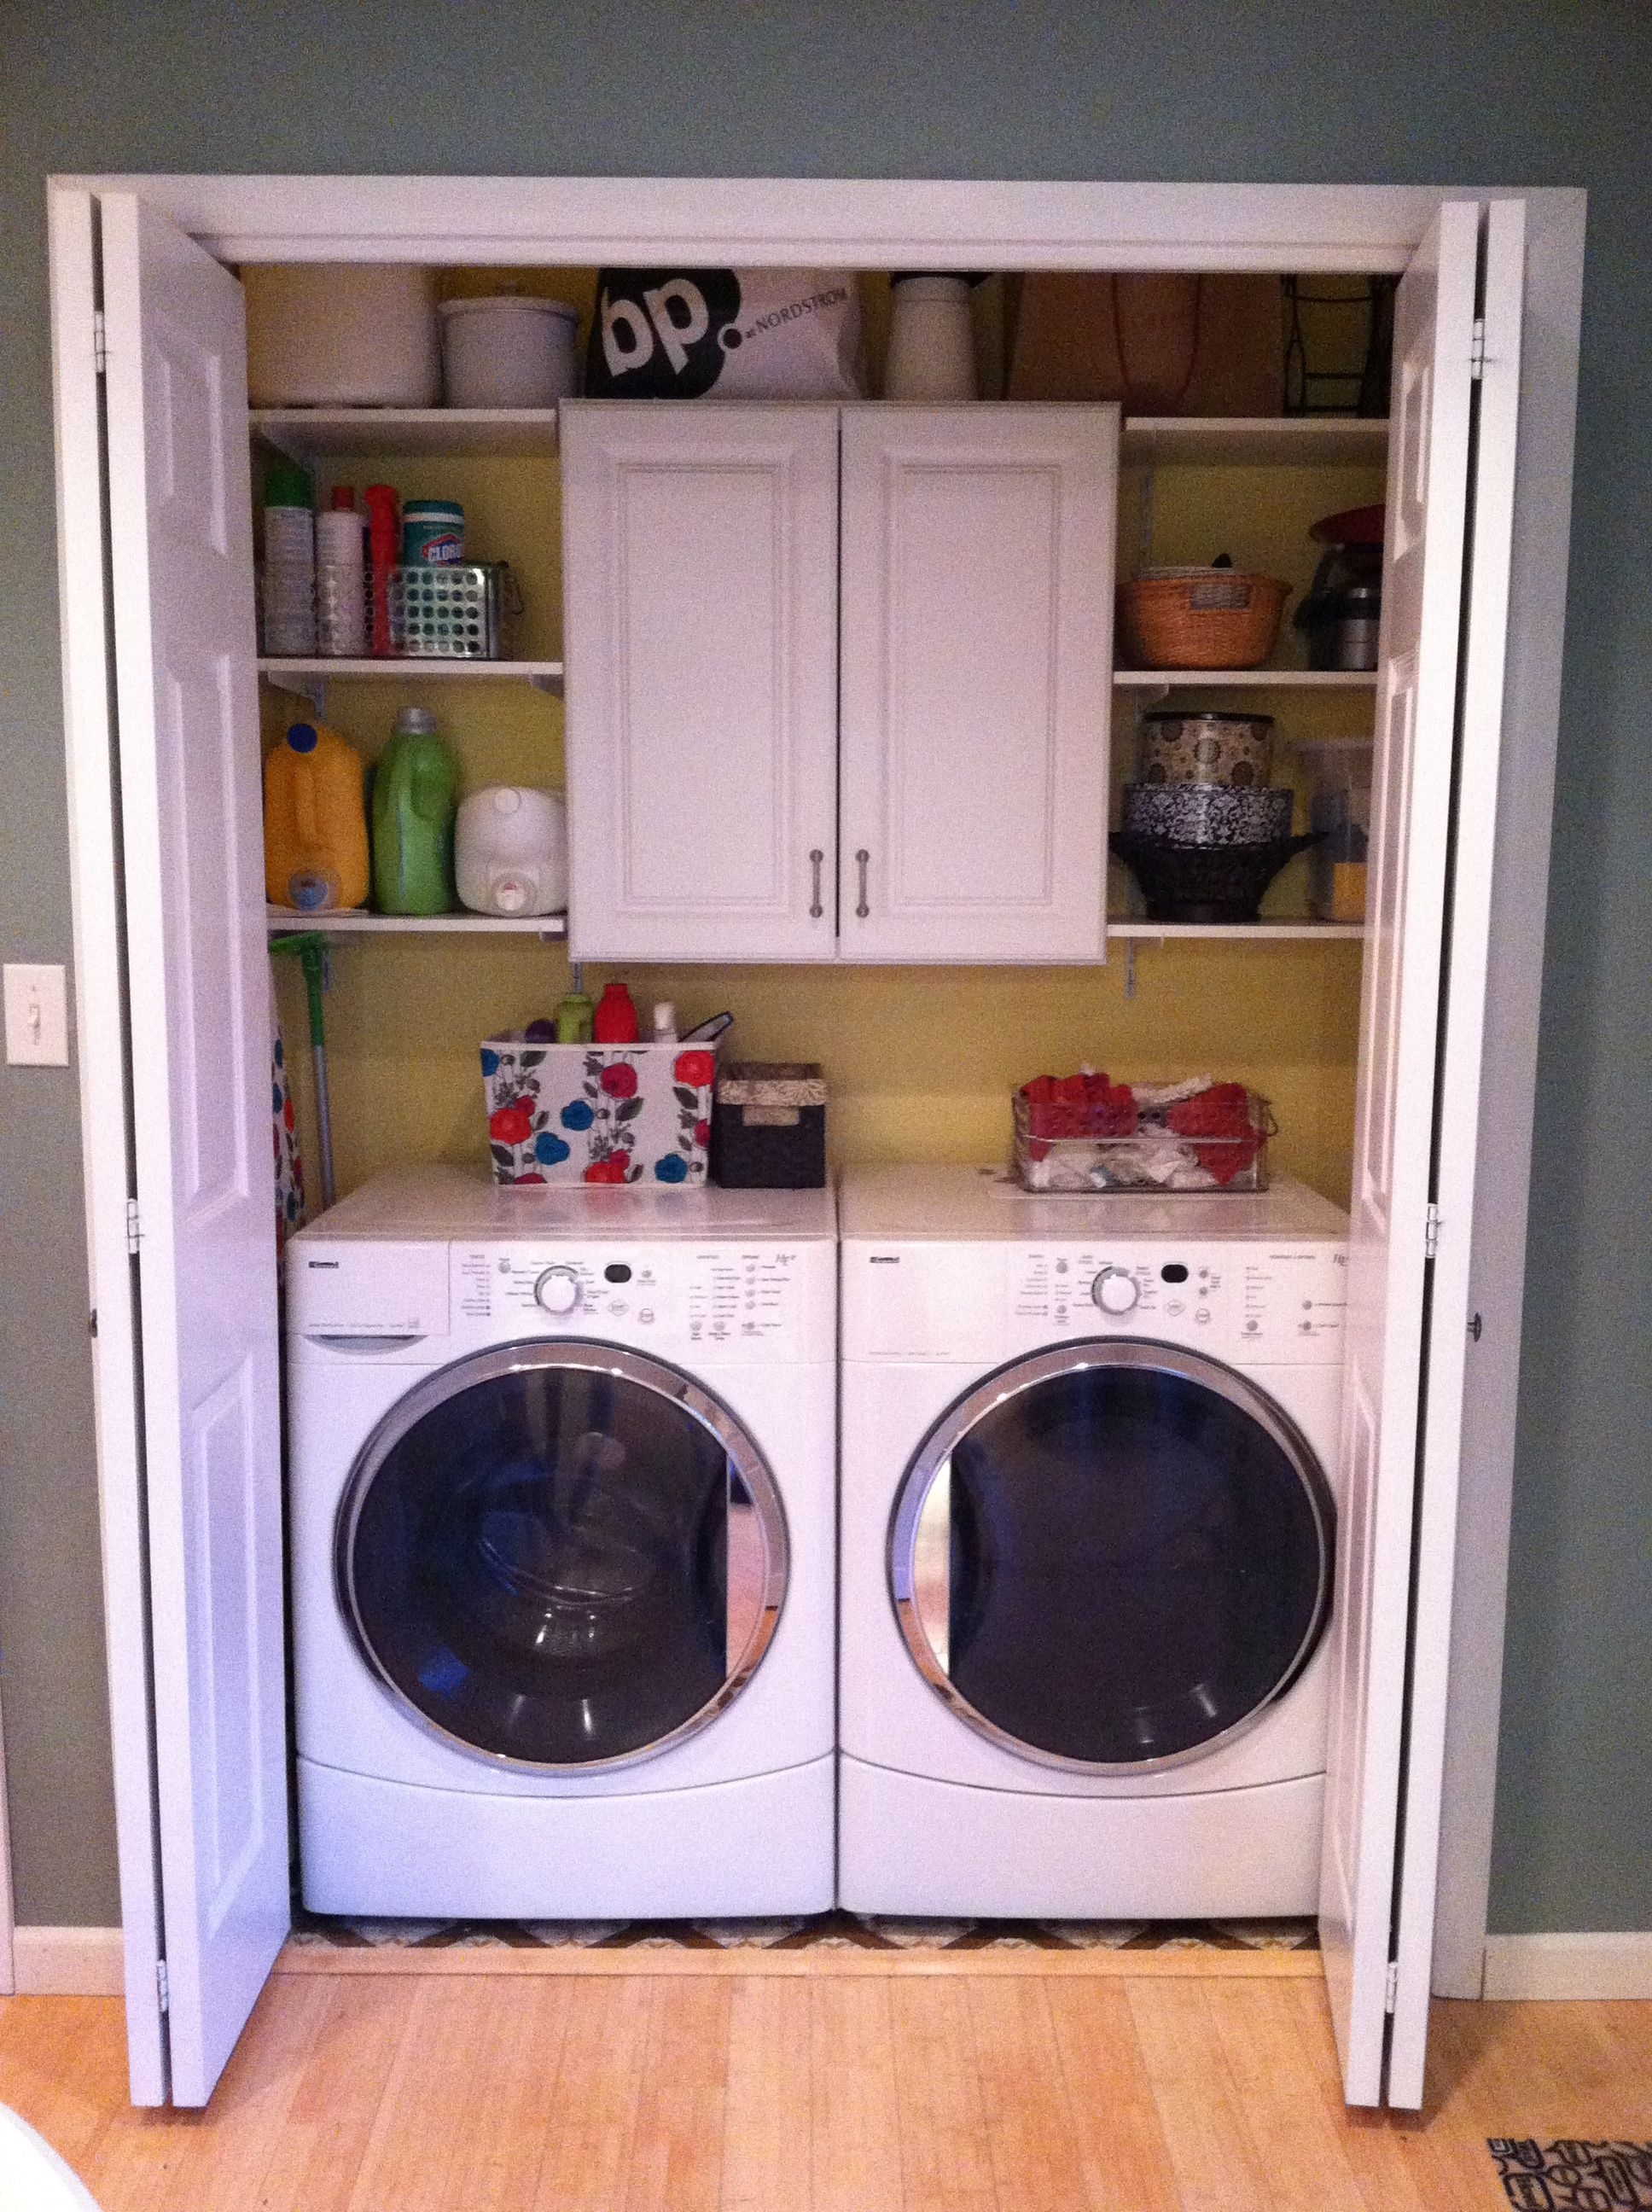 Laundry closet upgrade! Good use of a small space Curb